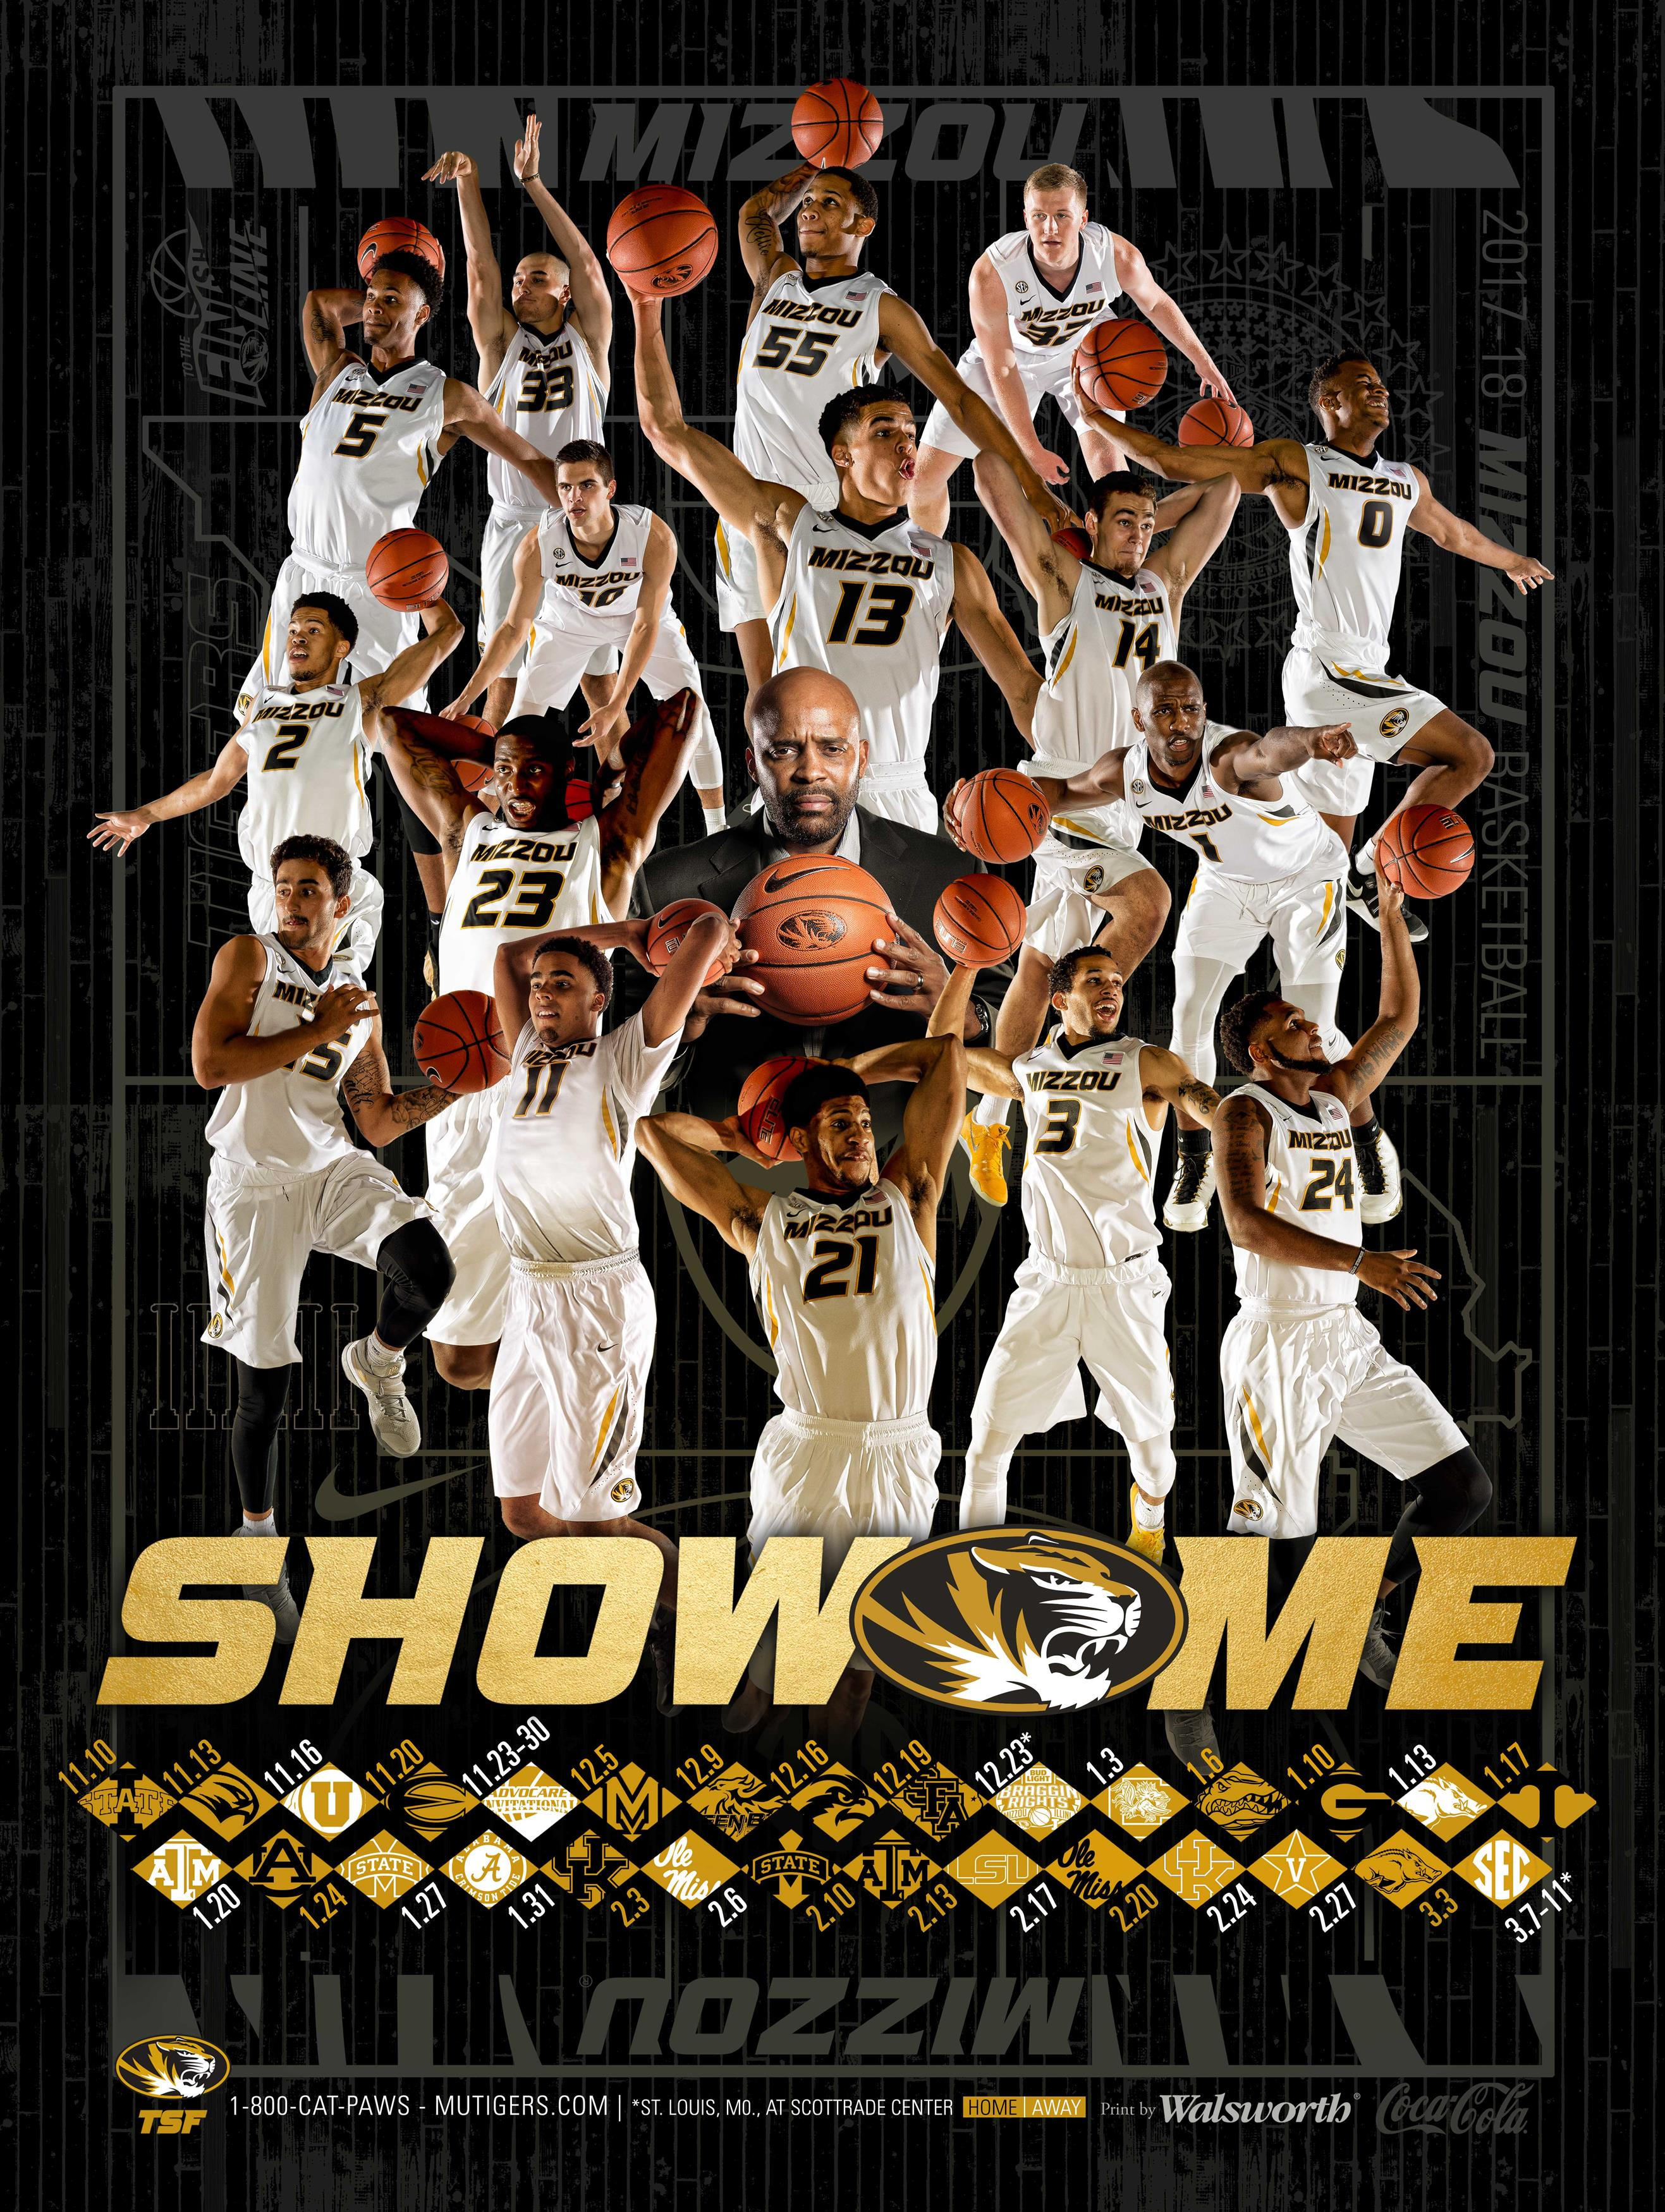 Mizzou Wallpapers University Of Missouri Athletics